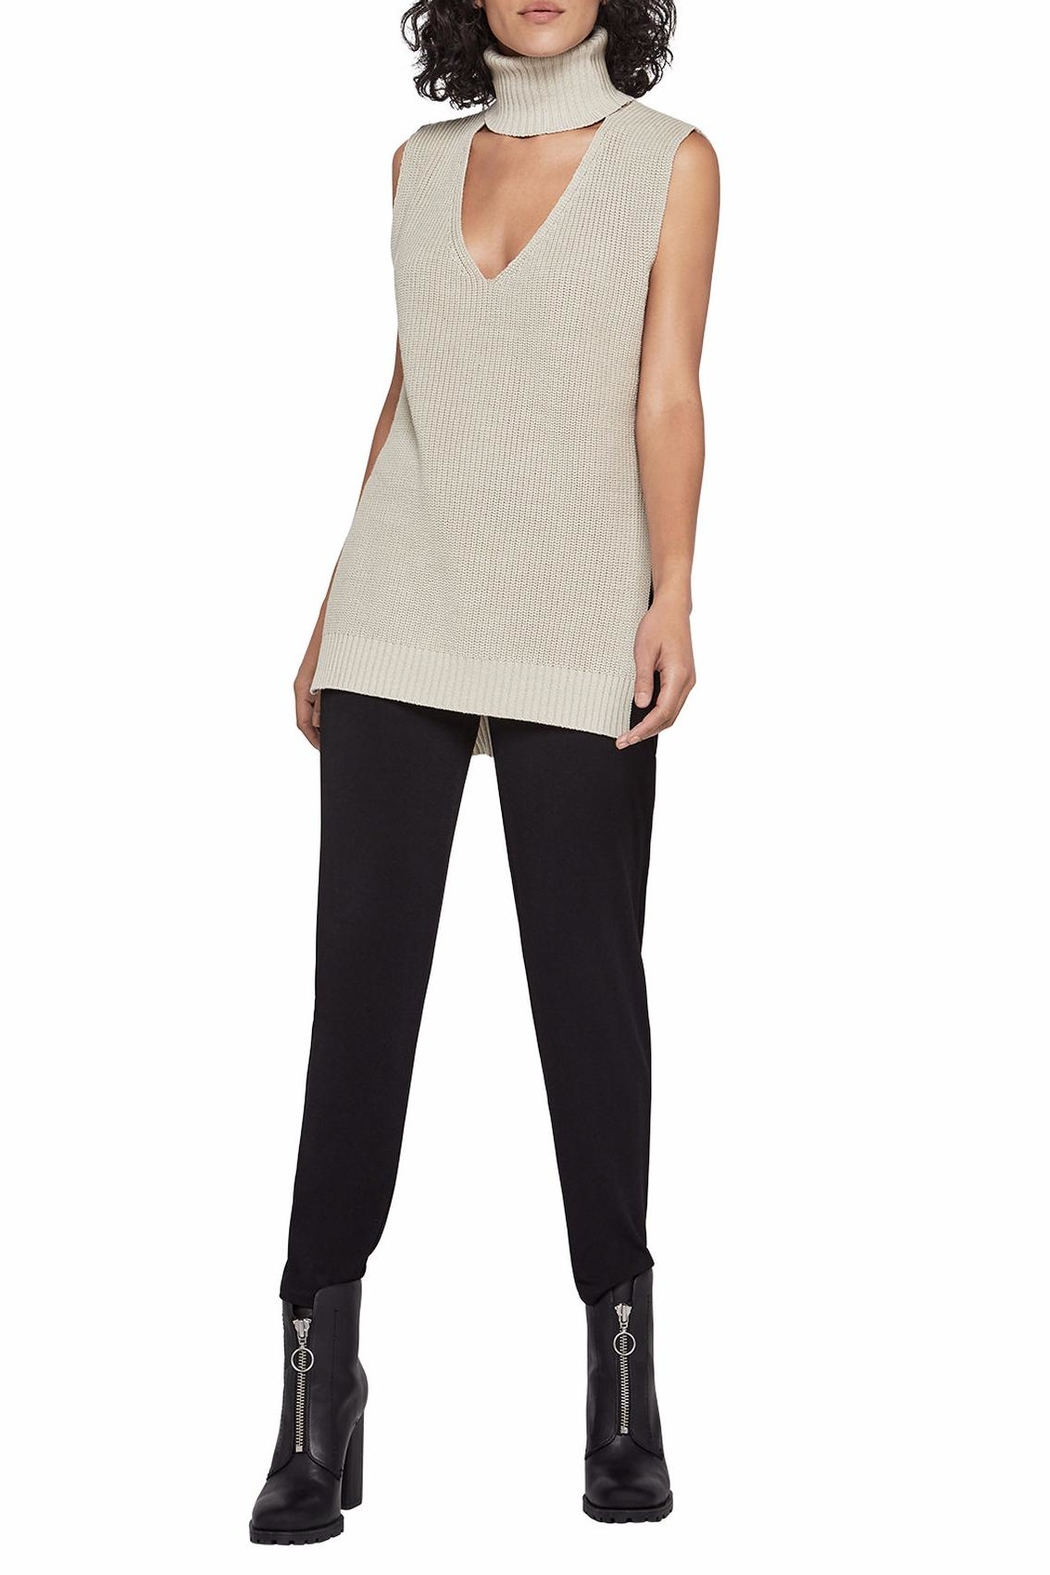 BCBGeneration Sleeveless Turtleneck Tunic - Main Image